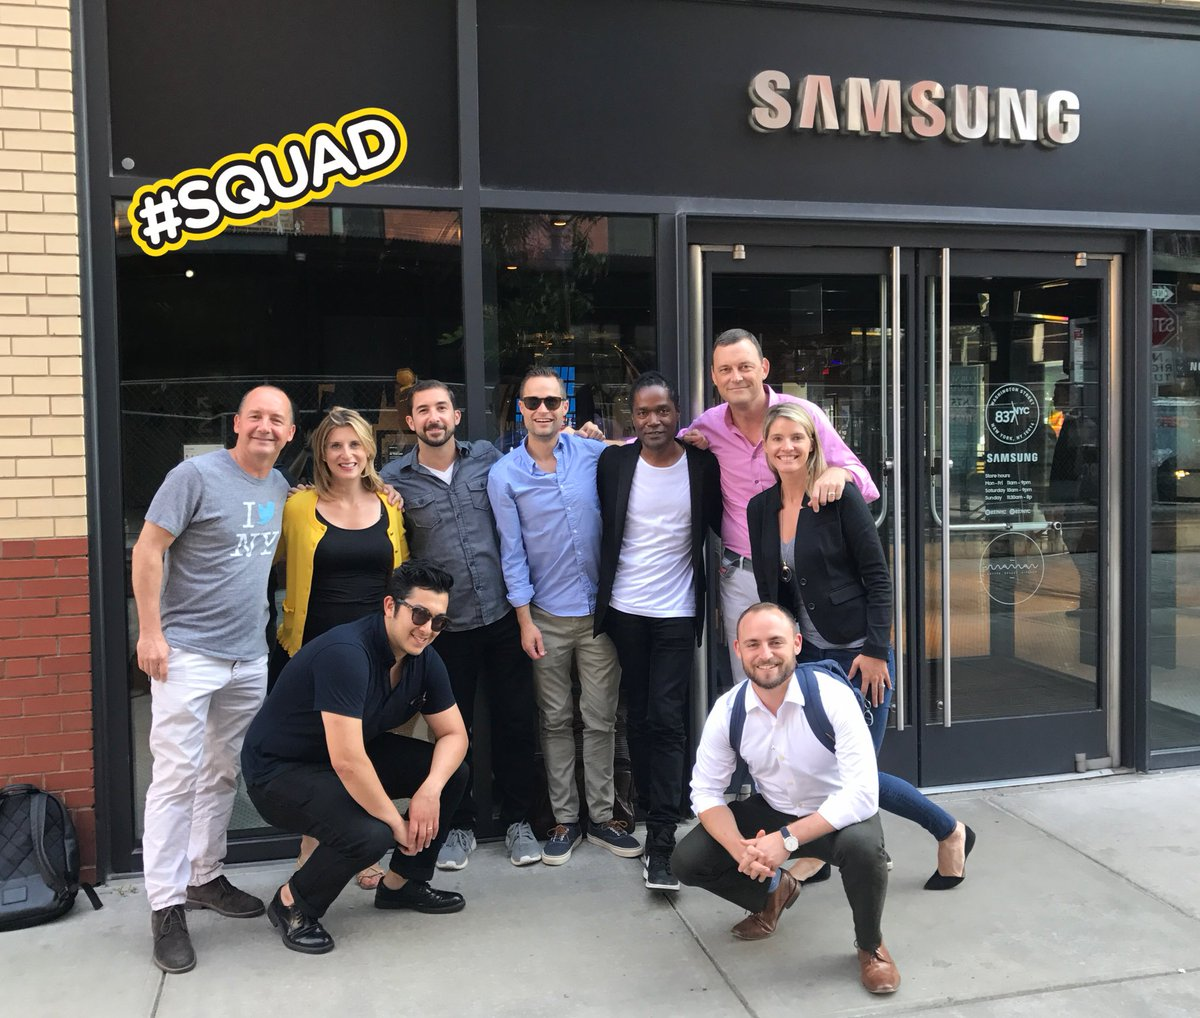 #RichMegastore   RT @ChazCasual: RT @sandyearley: These people. This team. So lucky. #caremore #oneteam #samsung <br>http://pic.twitter.com/7qBCKCAmvH